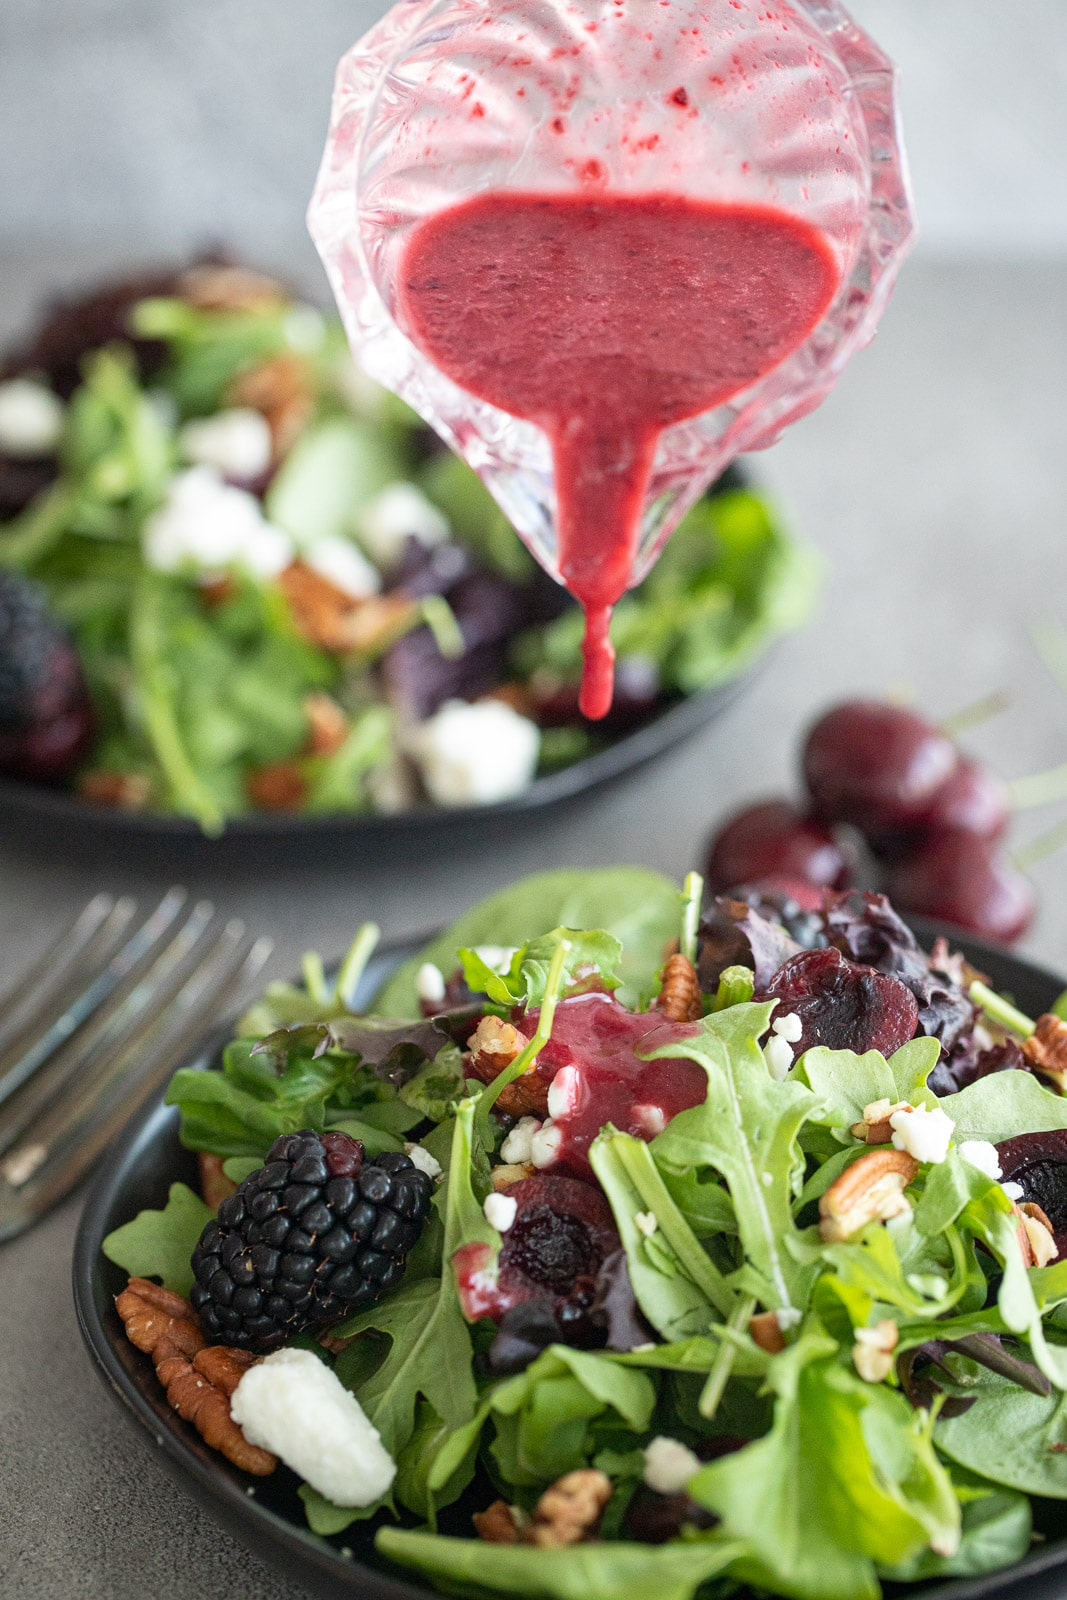 Woman adding cherry vinaigrette to a green salad with fruit.